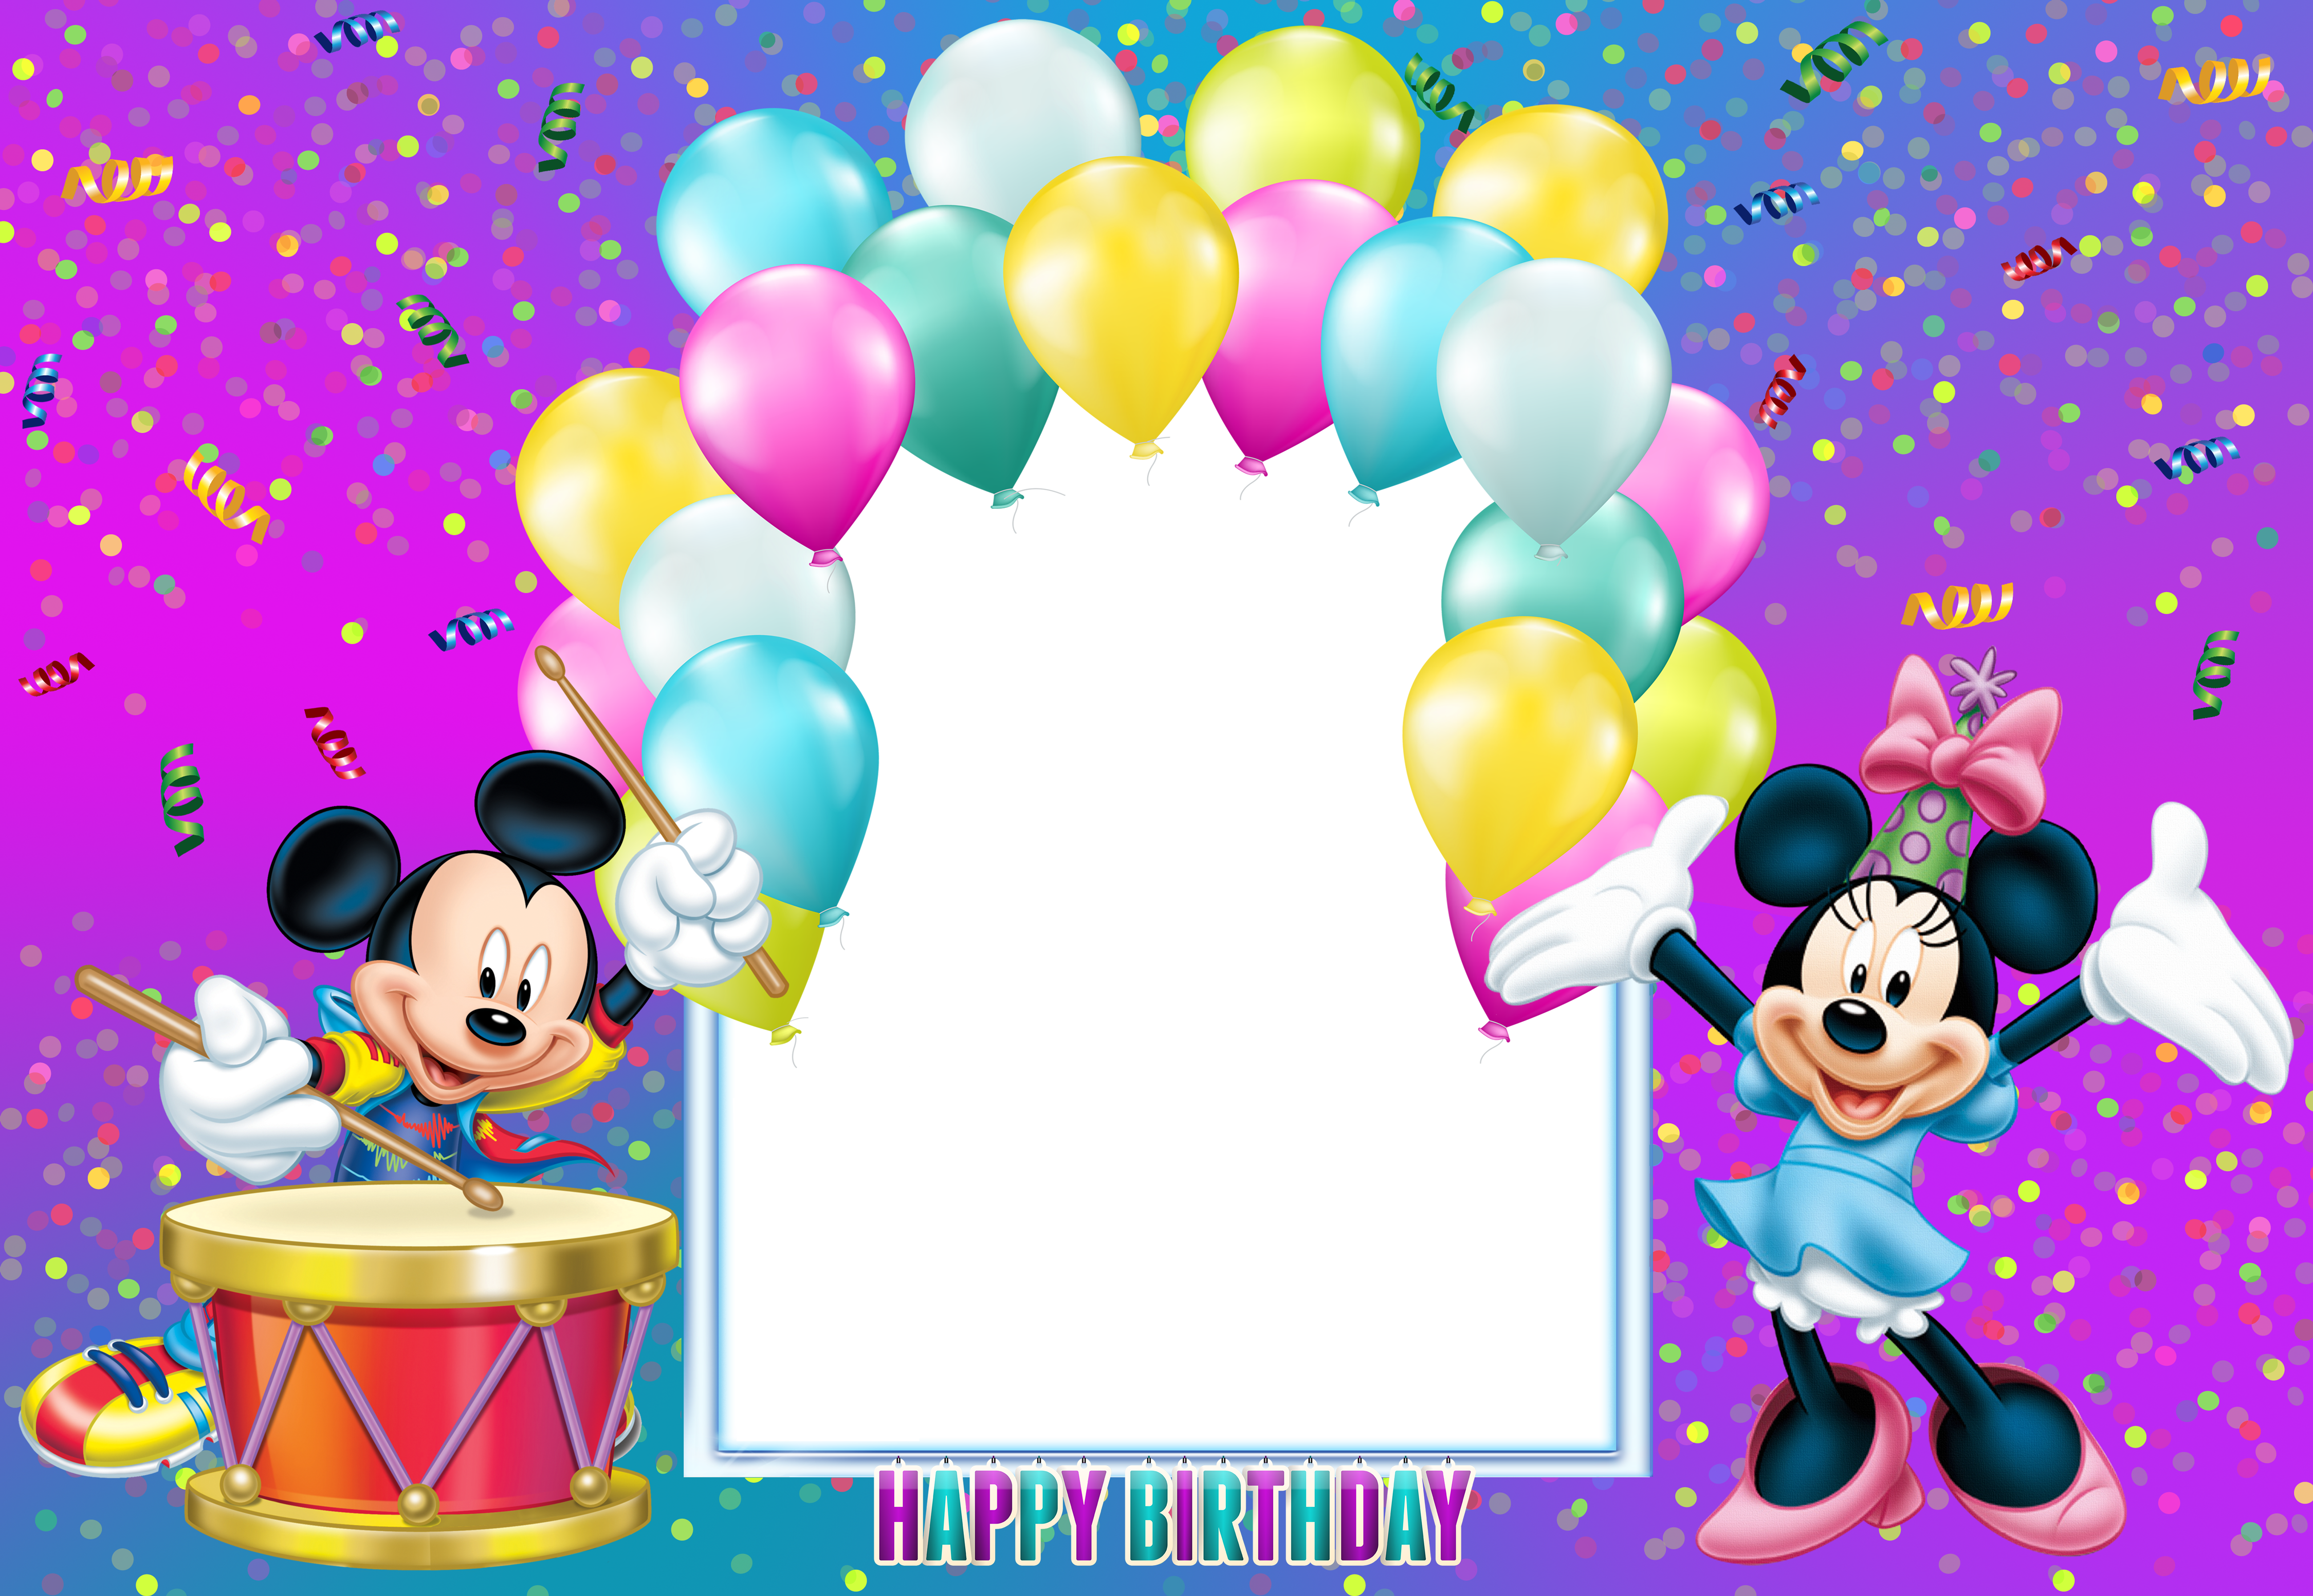 Pin by Arric yap on ewqeqwe | Happy birthday mickey mouse, Happy ... clip royalty free download